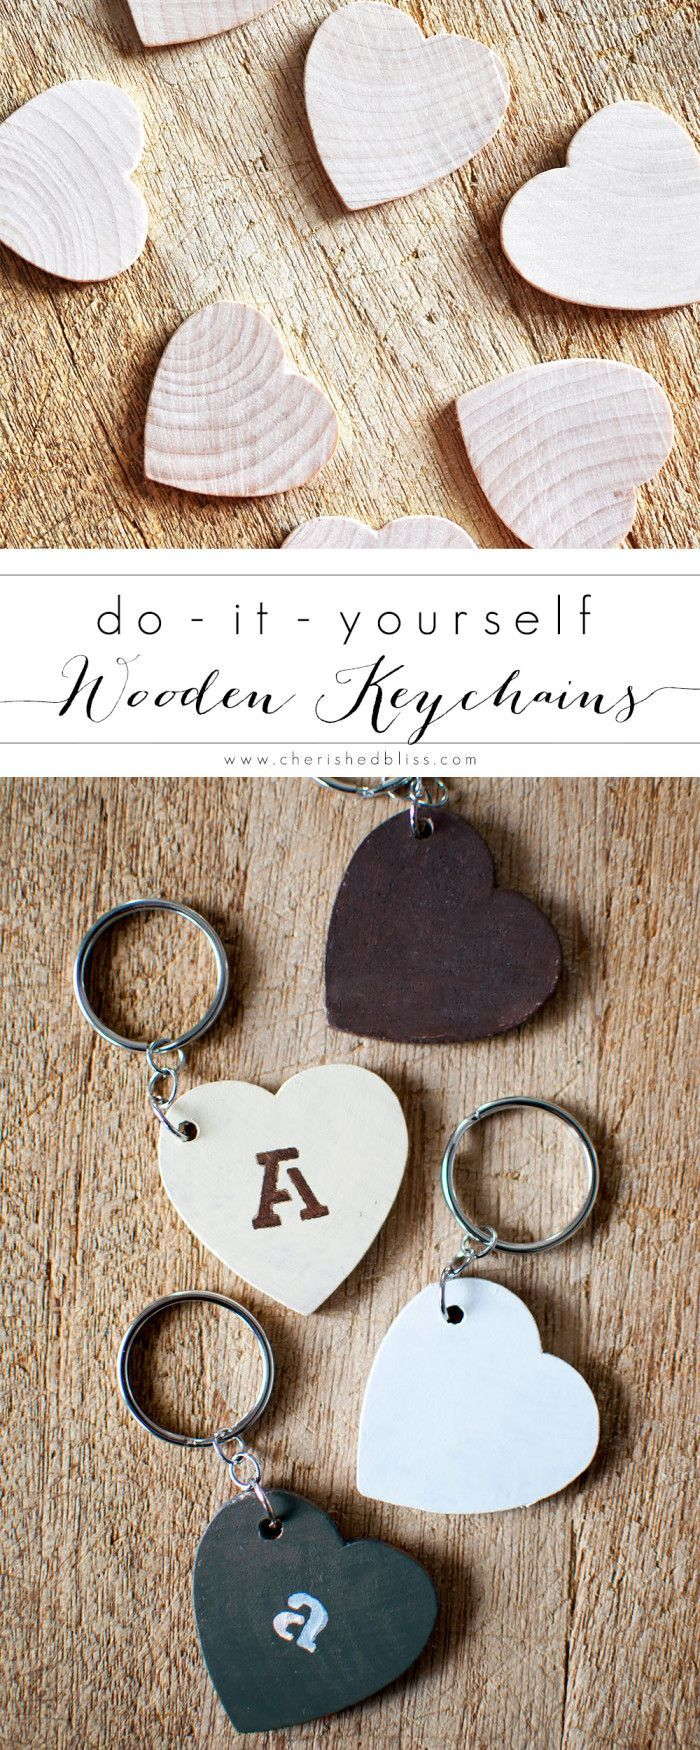 Diy keychains made from wooden hearts keychains easy handmade these diy keychains couldnt be easier to make and they are the perfect handmade gift for any age get the tutorial at httpcherishedbliss solutioingenieria Images